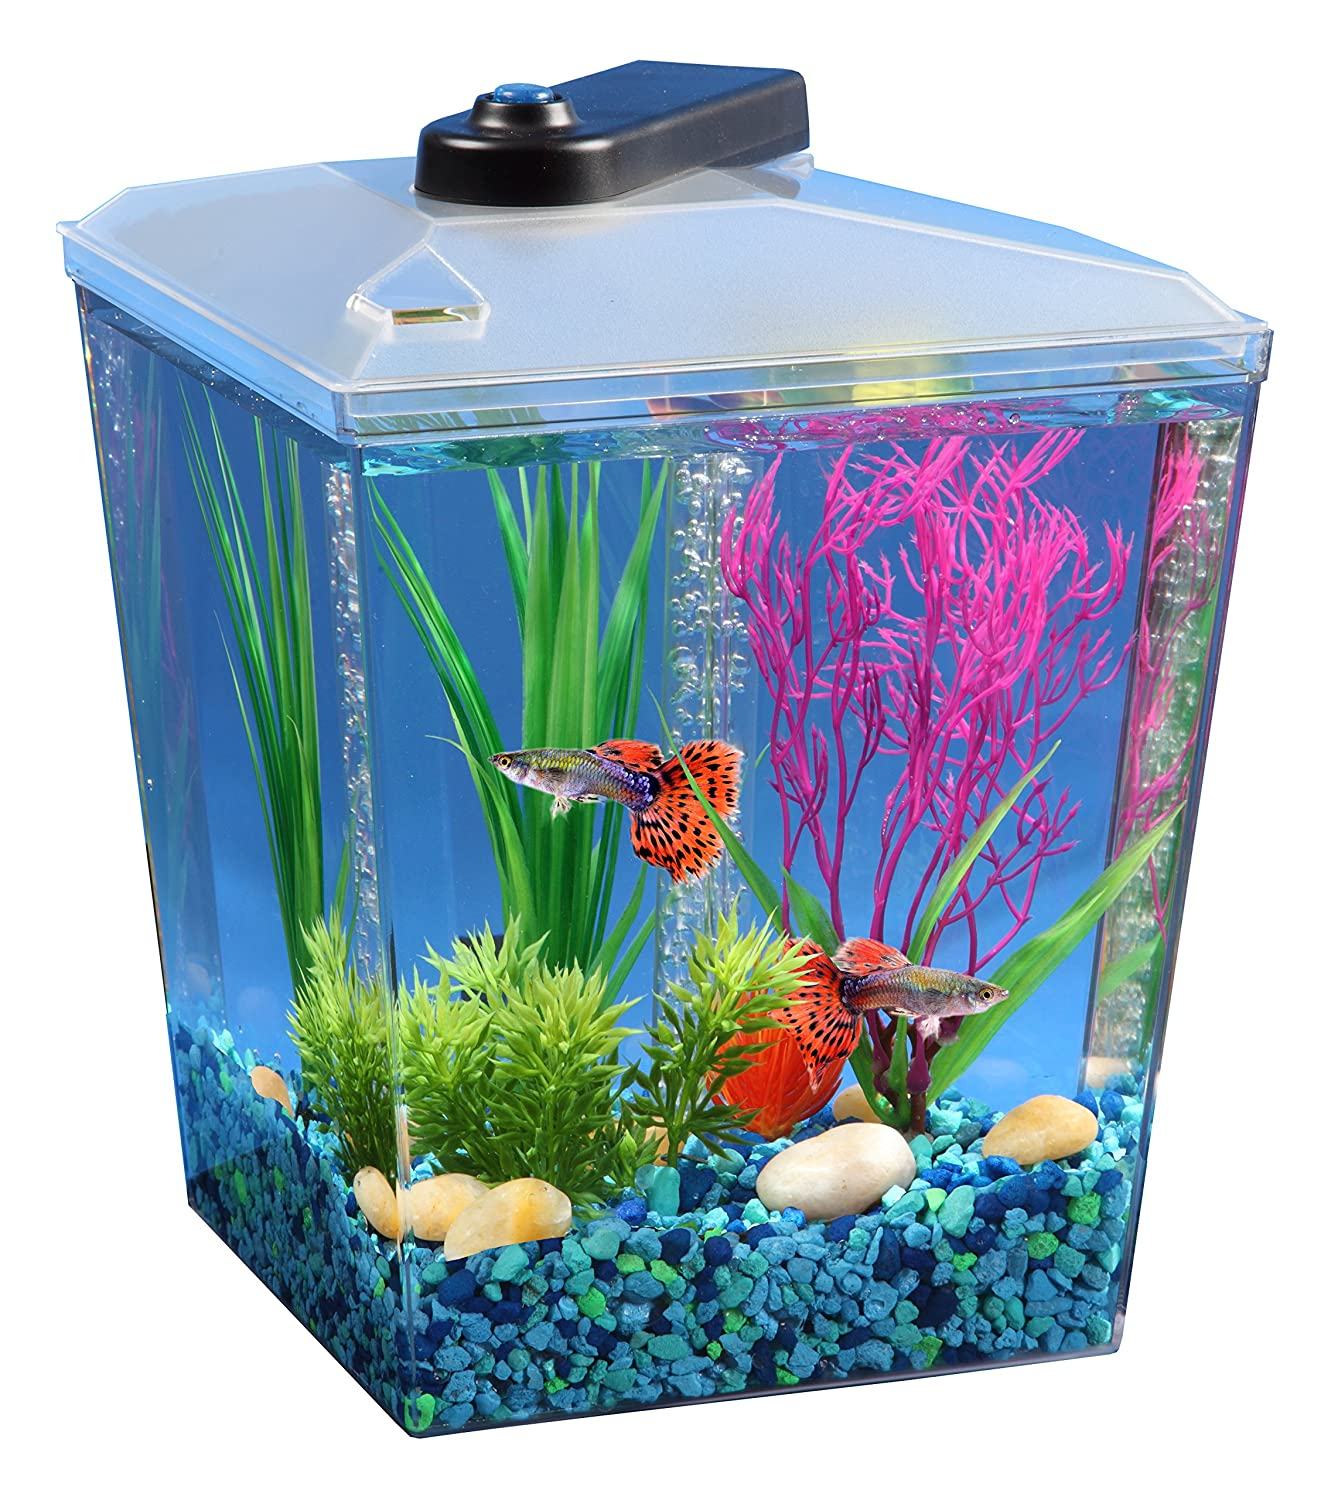 Amazon Koller Products AquaScene 1 Gallon Fish Tank with LED